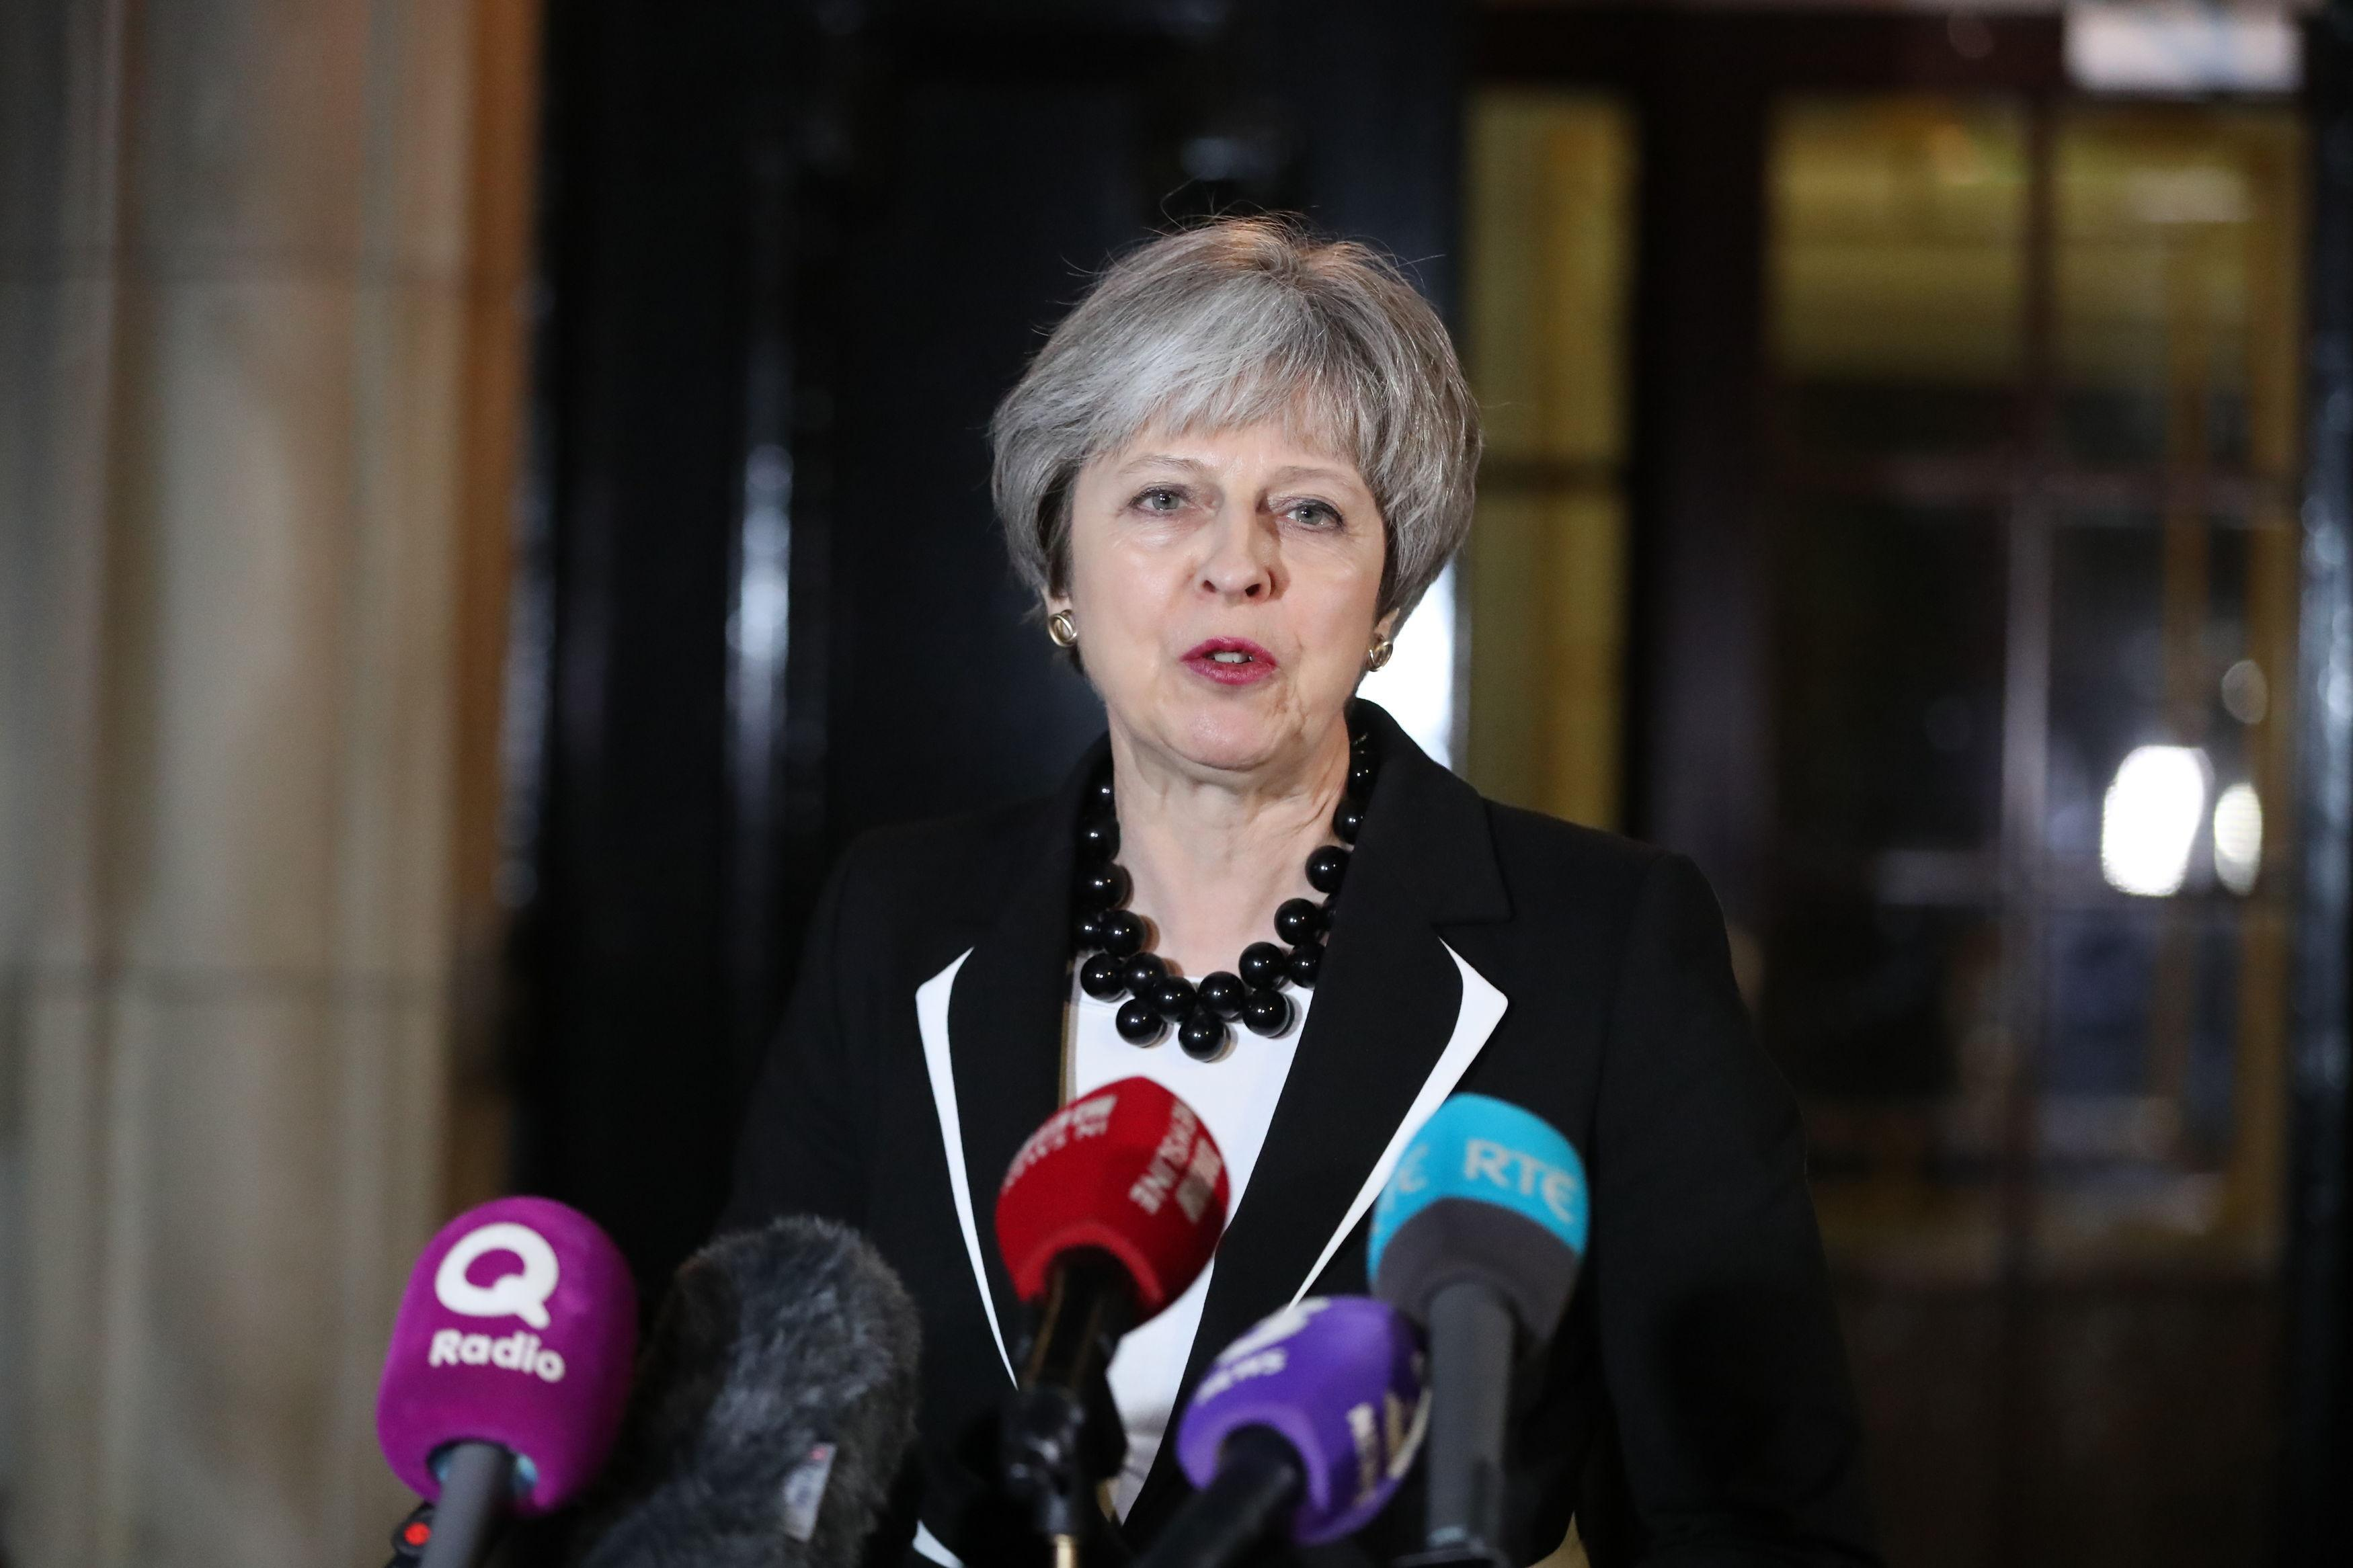 Theresa May urges Northern Ireland's feuding parties to make 'final push' to restore power-sharing government after she failed to broker a deal